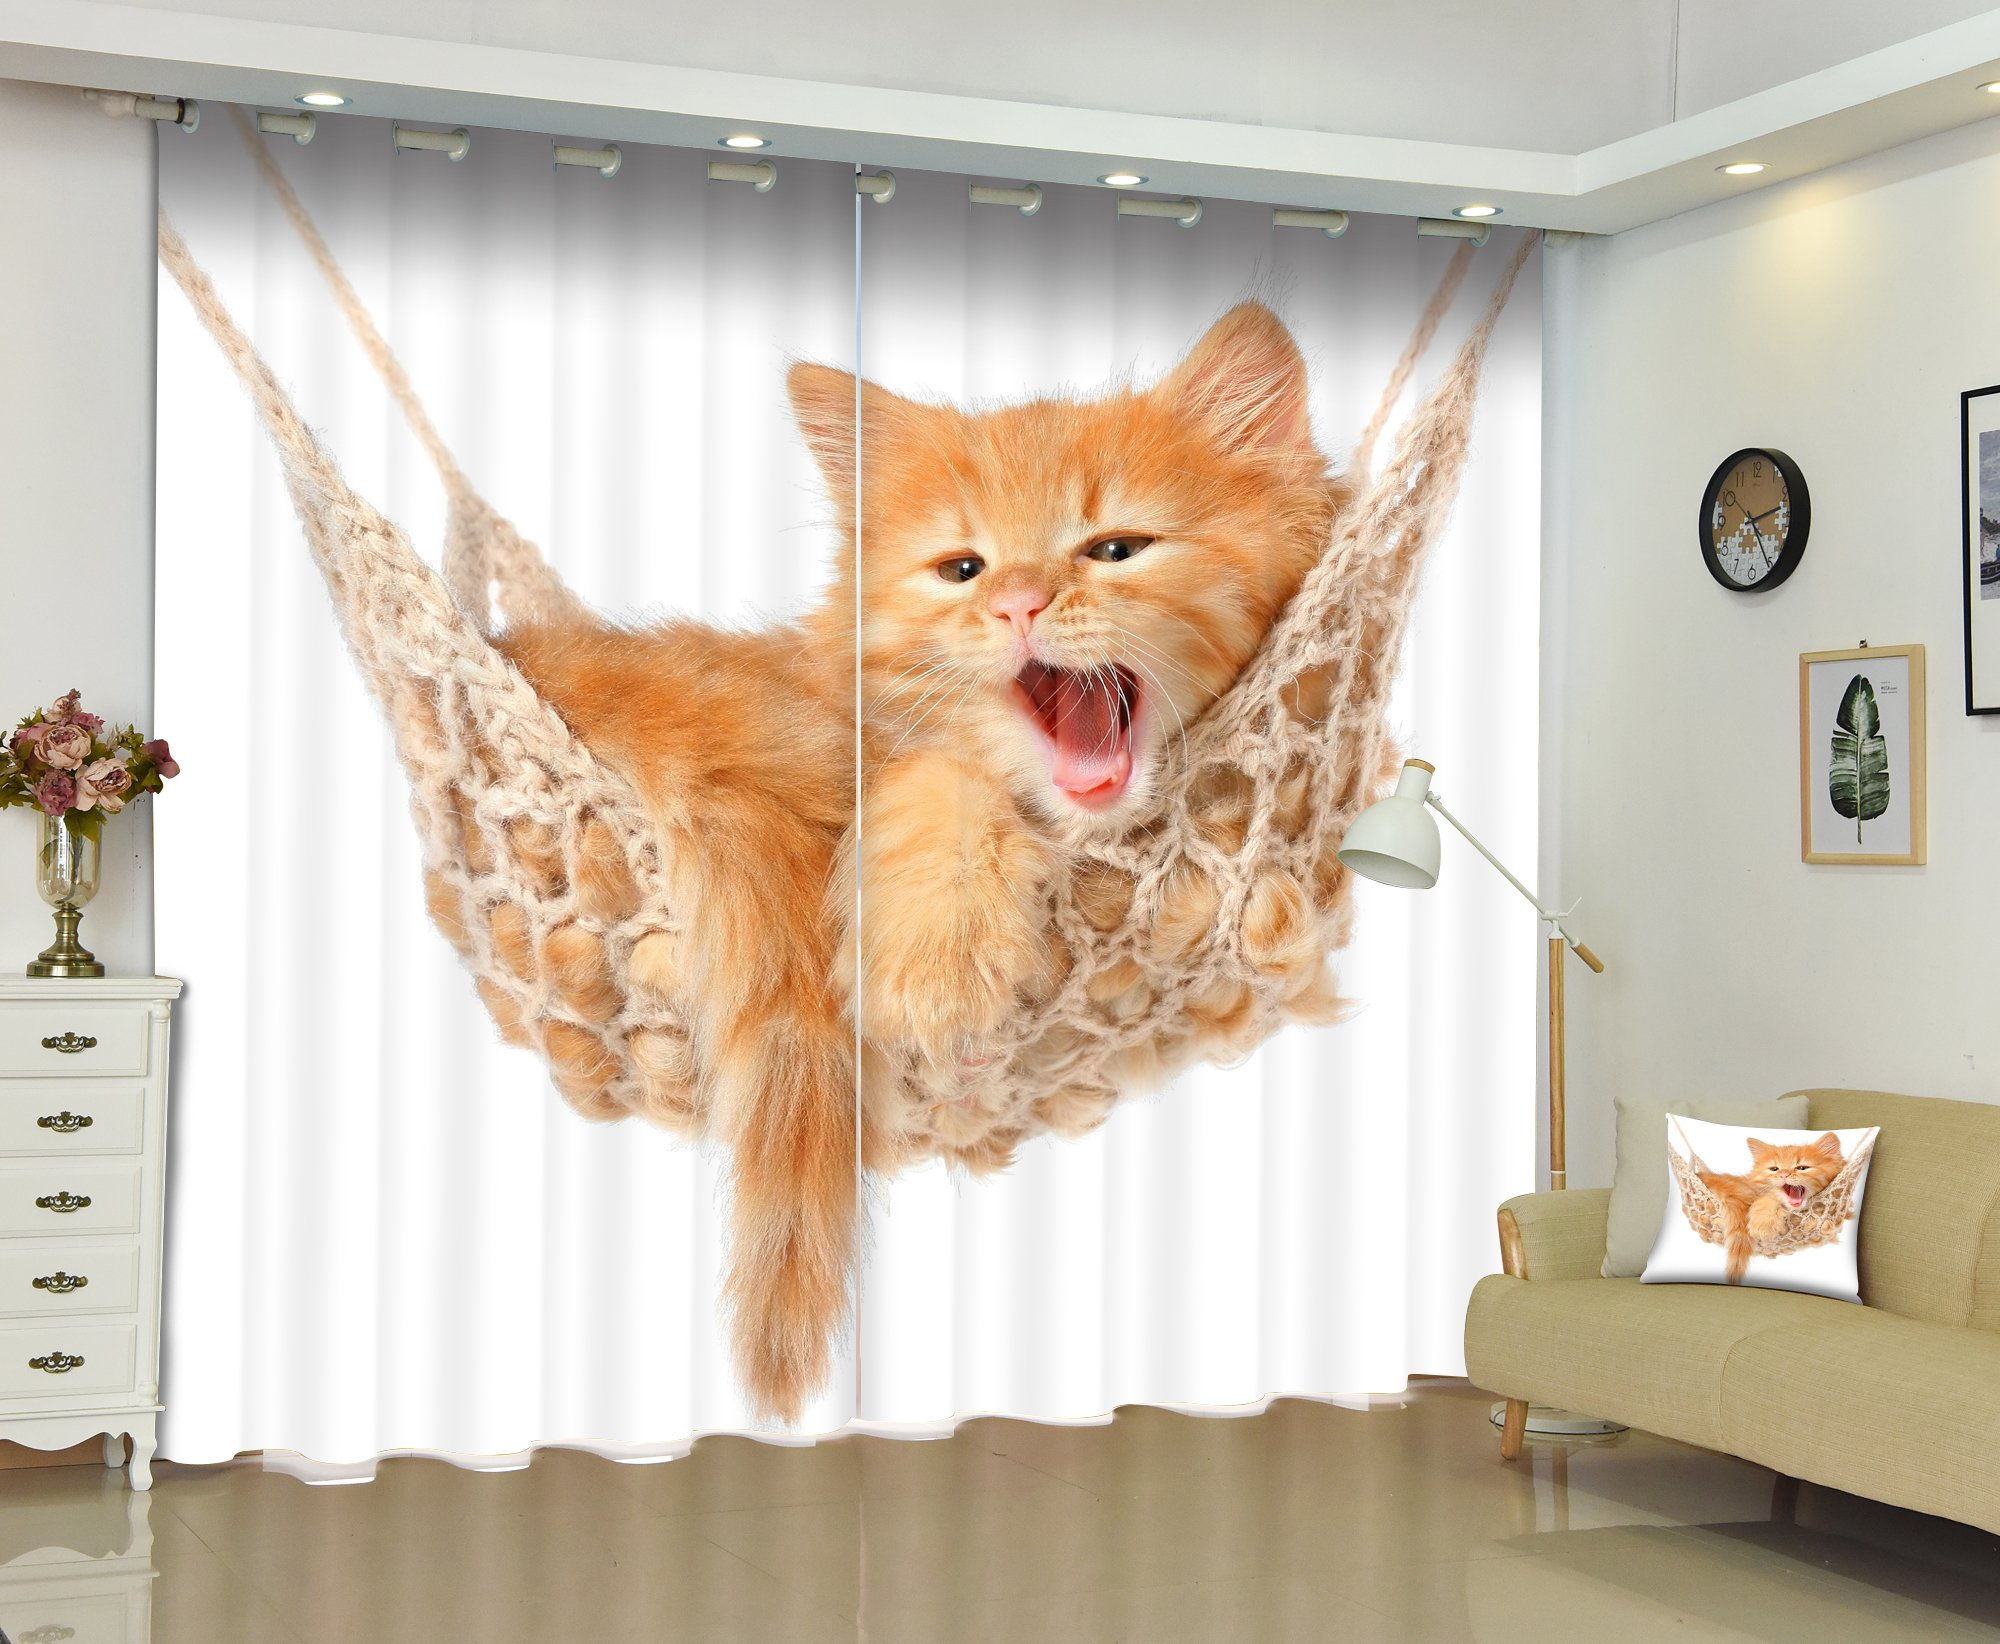 Newrara 3D Lovely Cat Printed Animal Style Thick Polyester 2 Panels Window Curtain For Living Room&Bedroom,Free Hook Included (80W84''L, Color4)